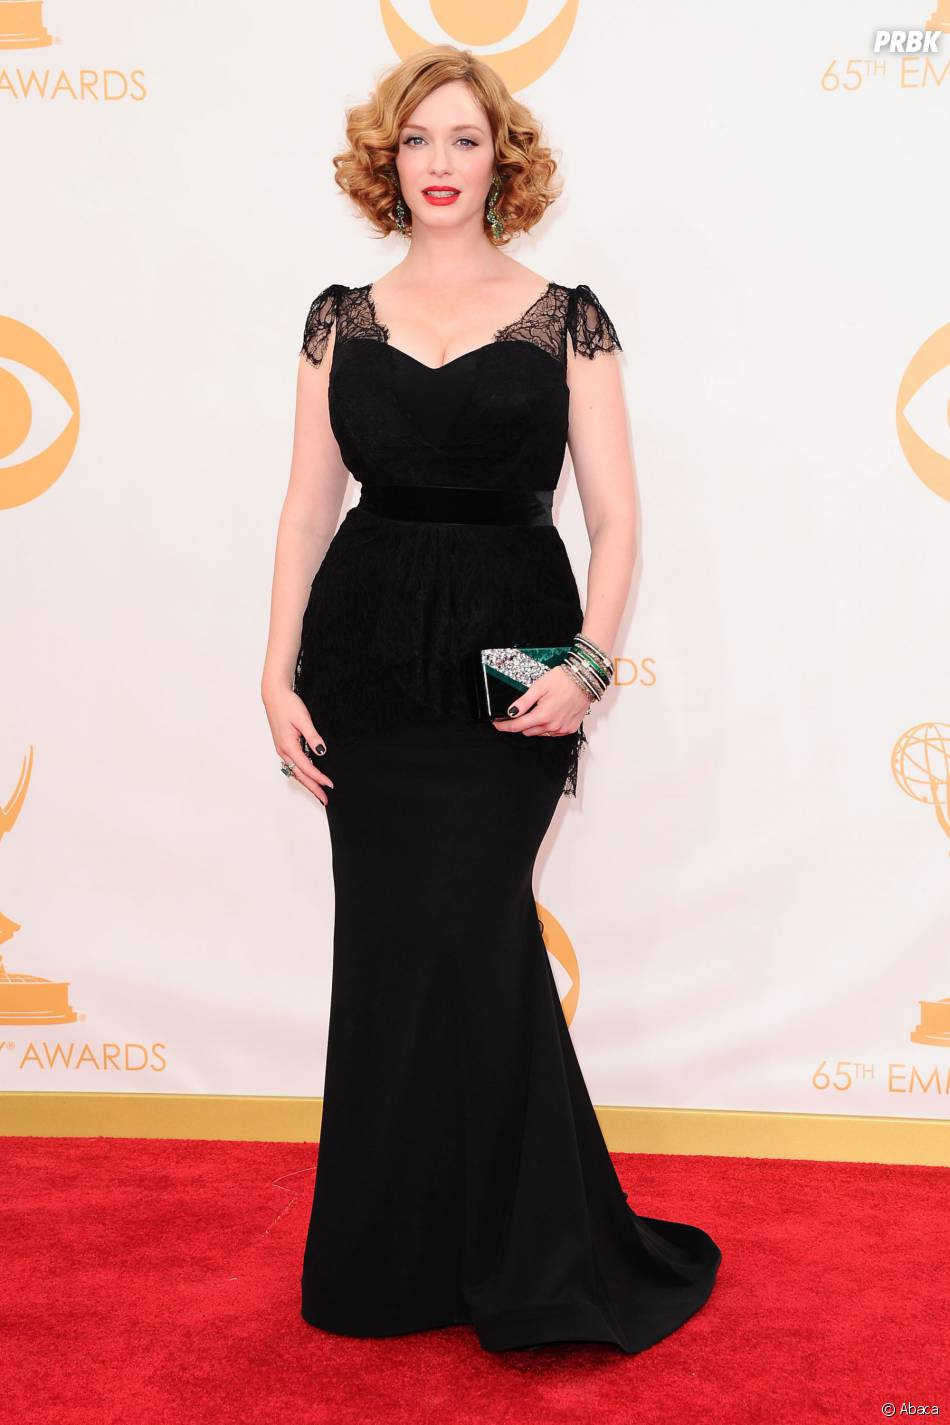 Christina Hendricks aux Emmy Awards 2013 le 22 septembre 2013 à Los Angeles